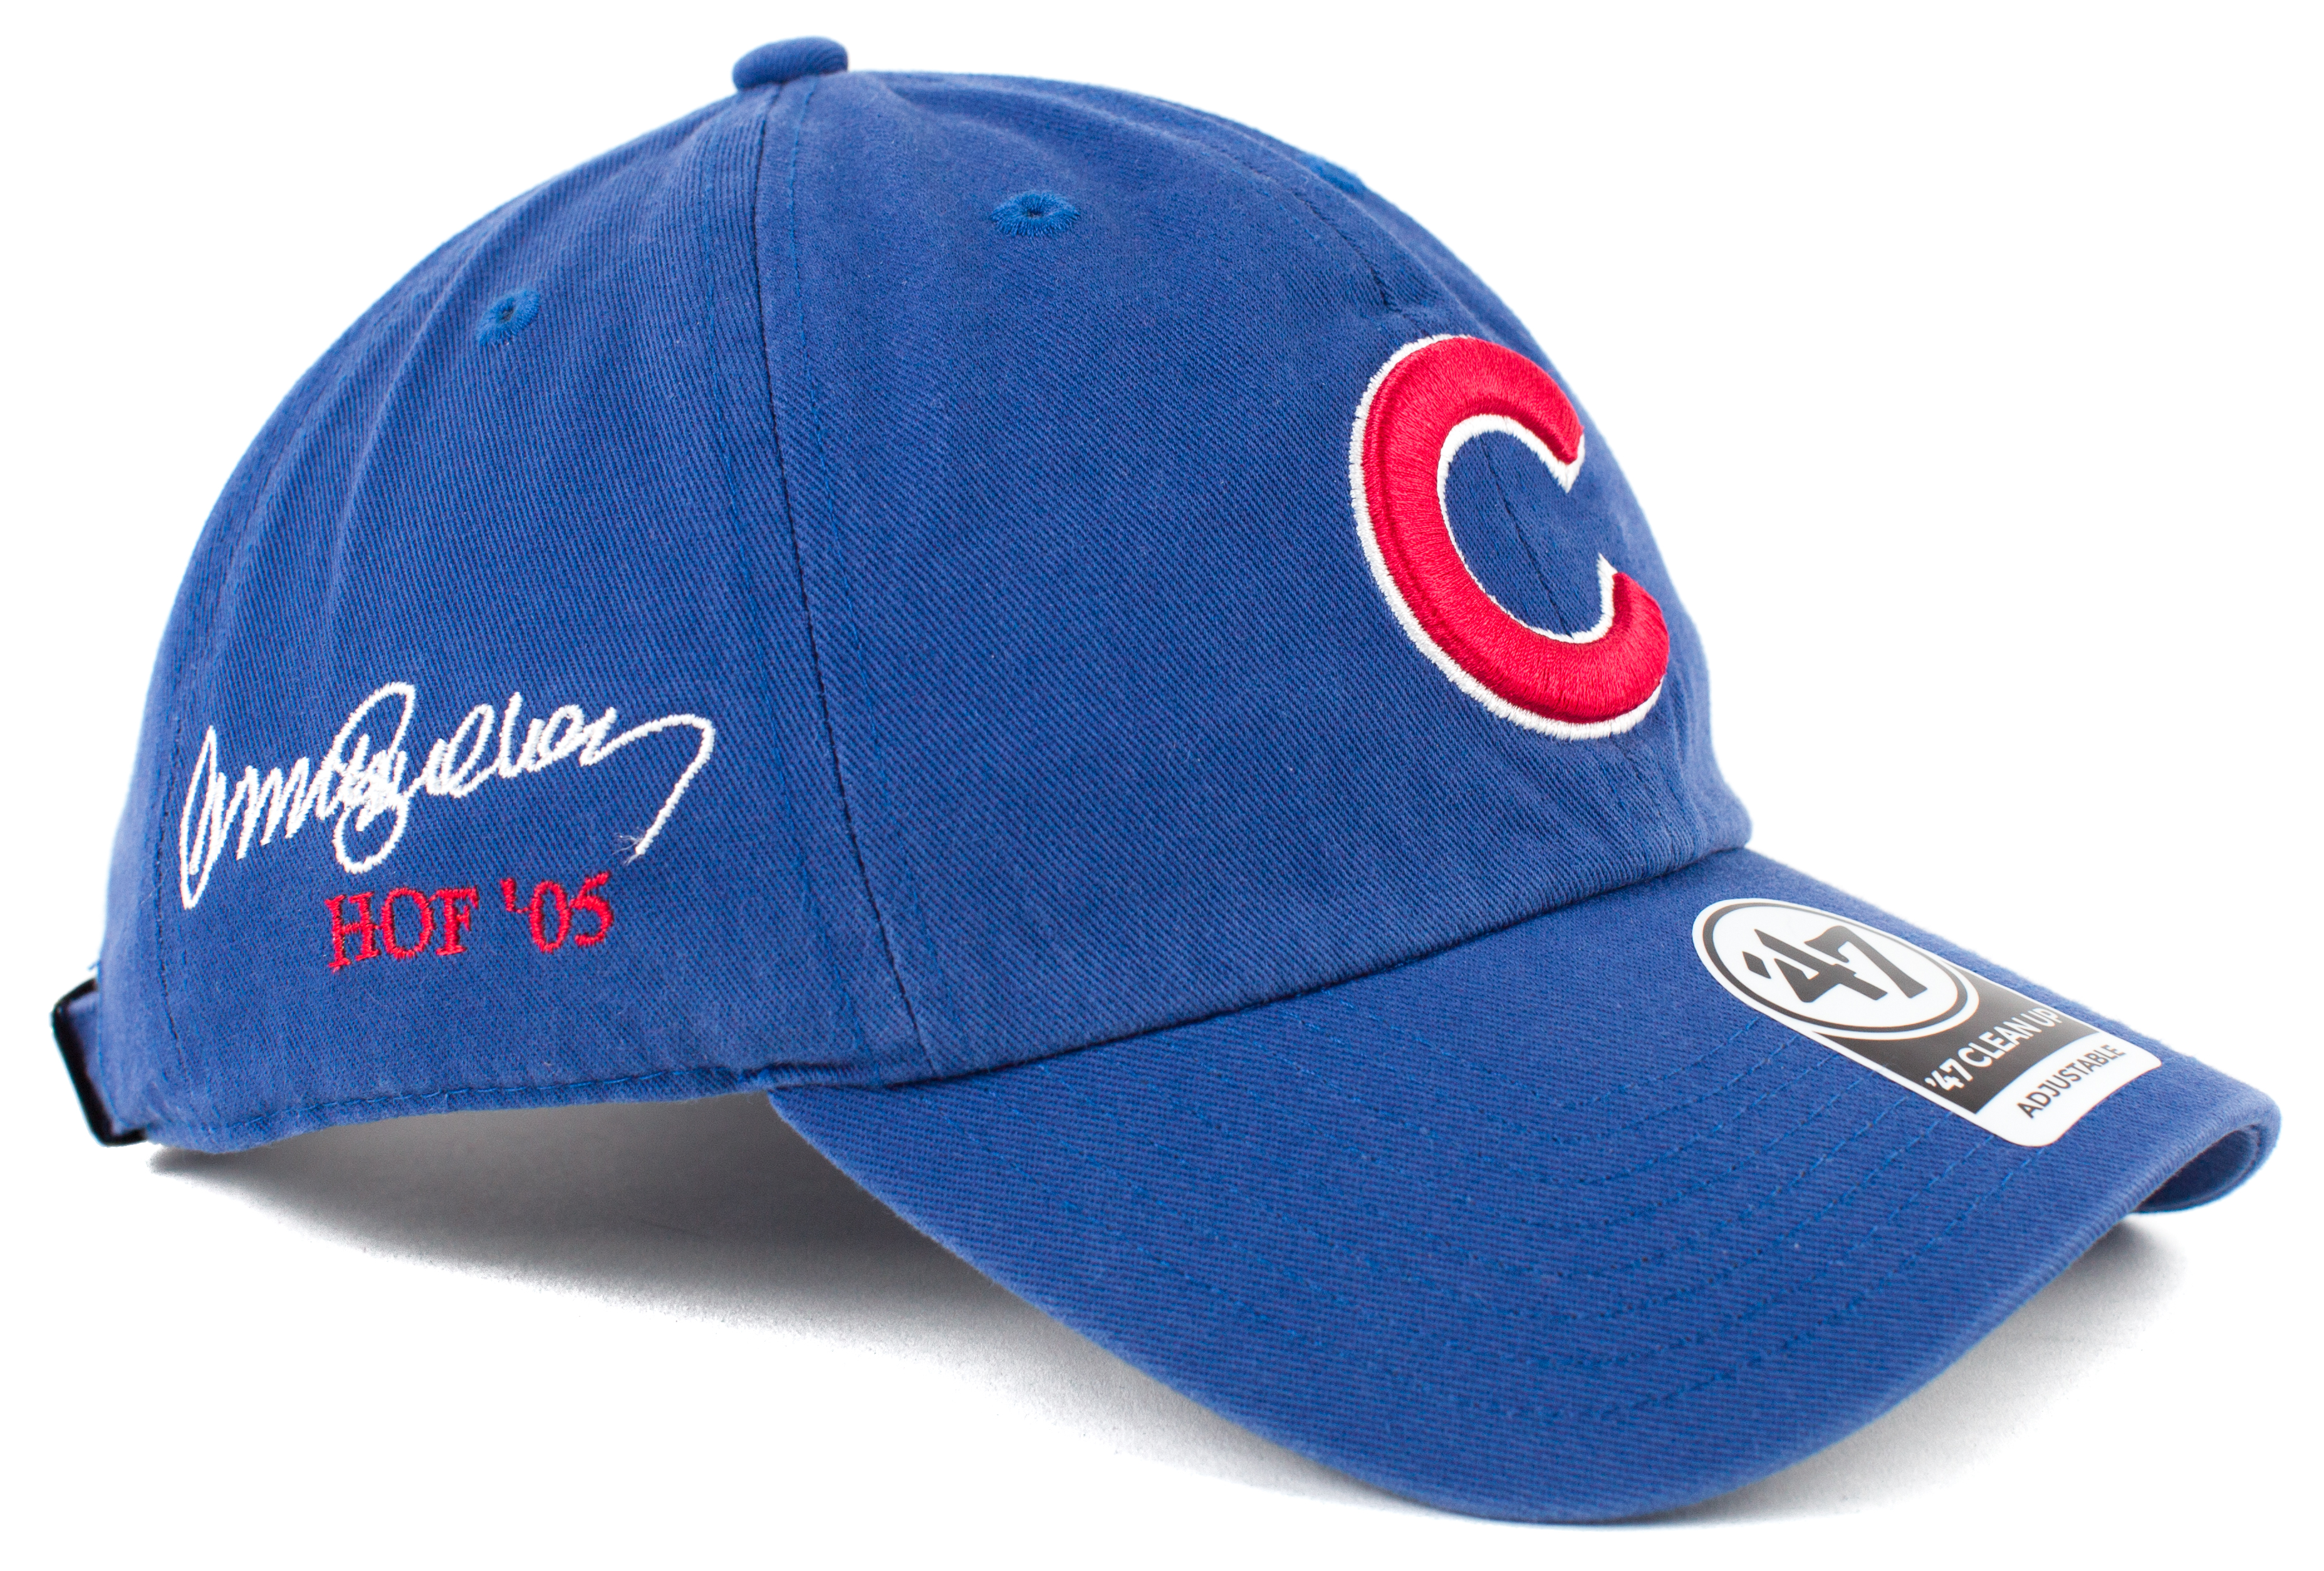 Mlb Hall Of Fame Athlete Embroidery Now Available Lids